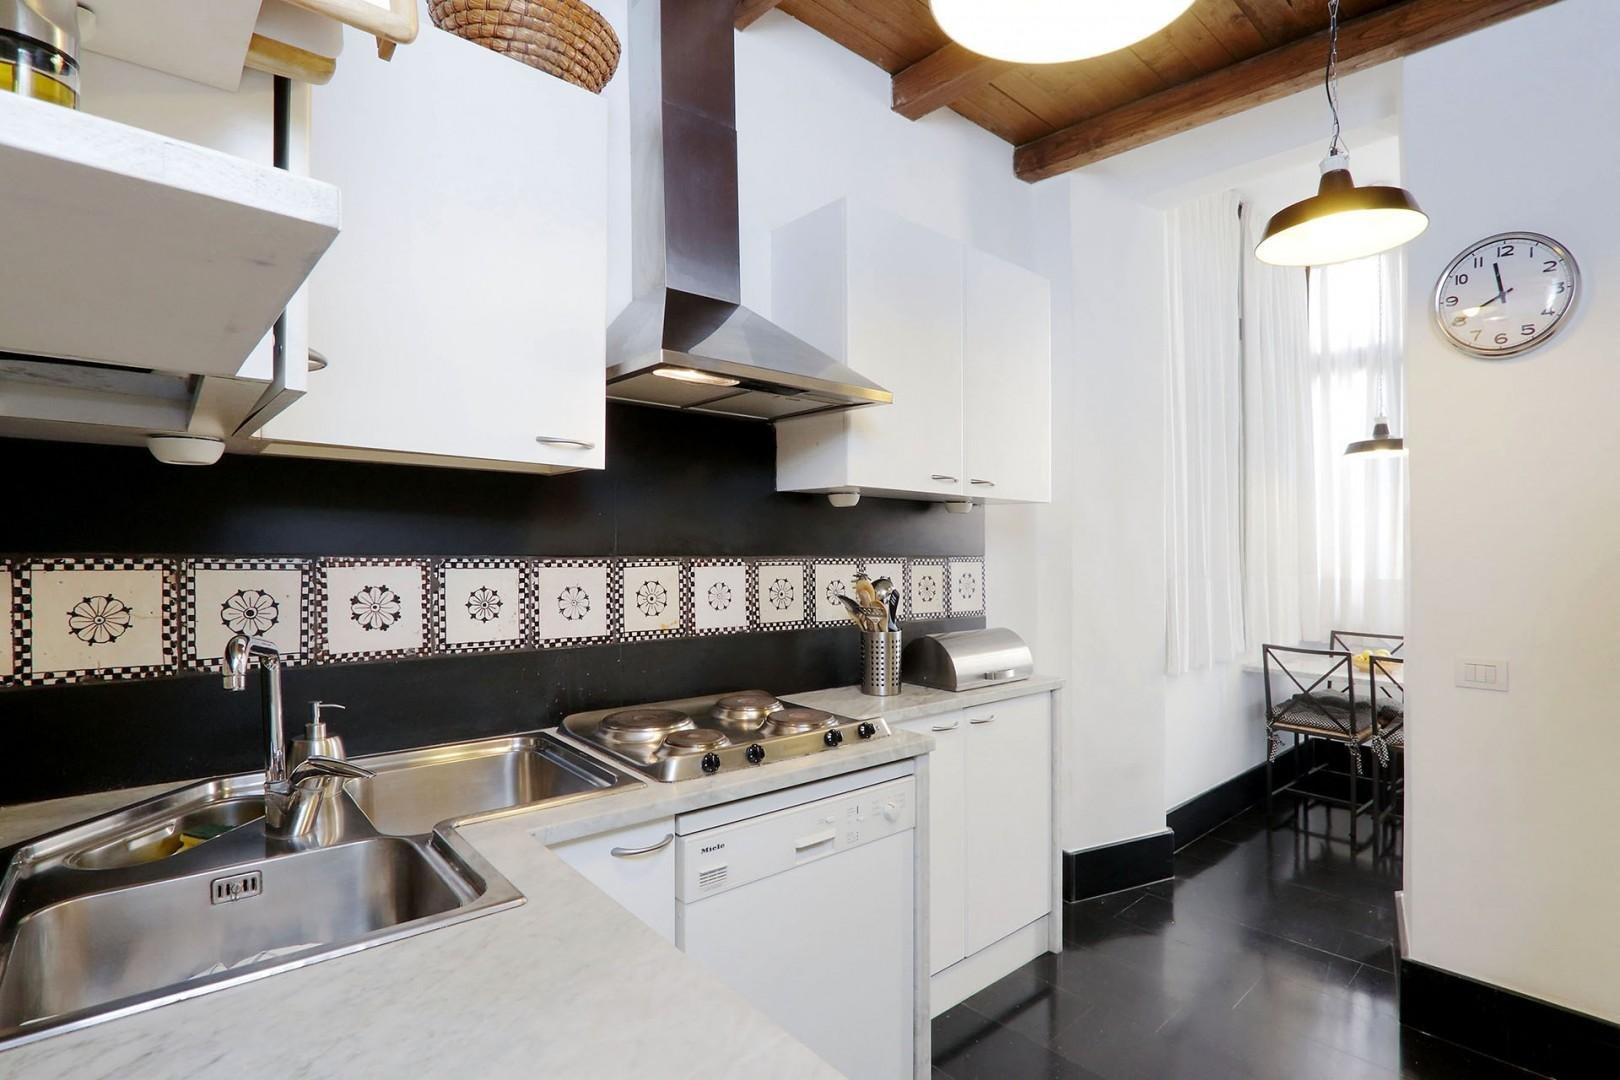 This full and separate kitchen will support simple or elaborate cooking.